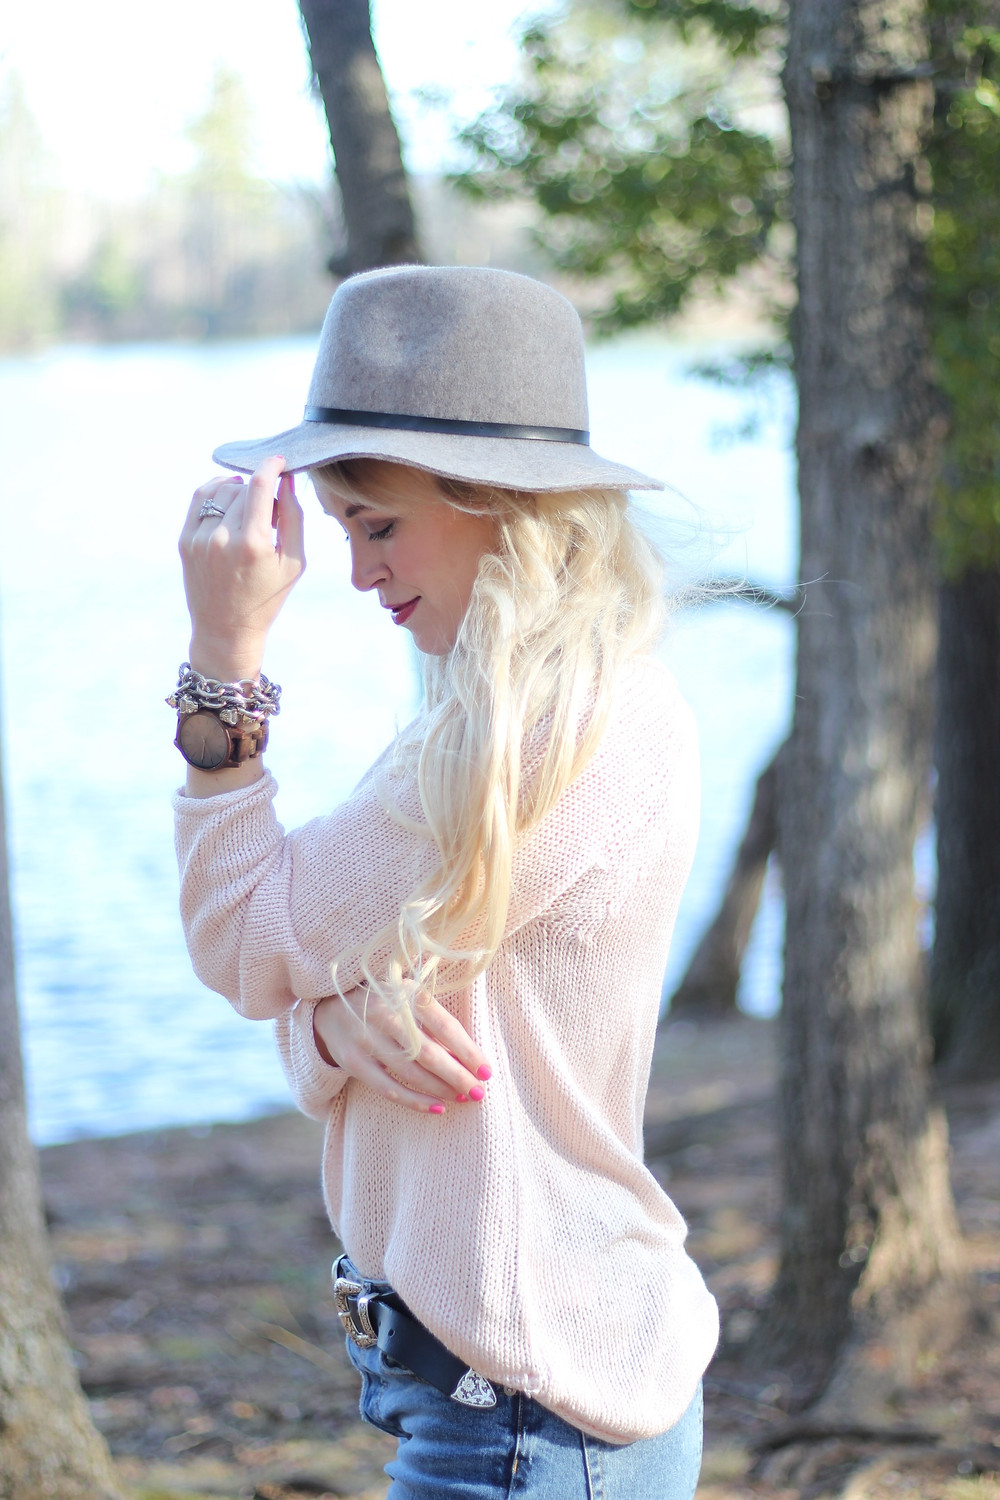 A young mother in a blush pink sweater wears a JORD Wood Watch to keep track of life's precious moments.